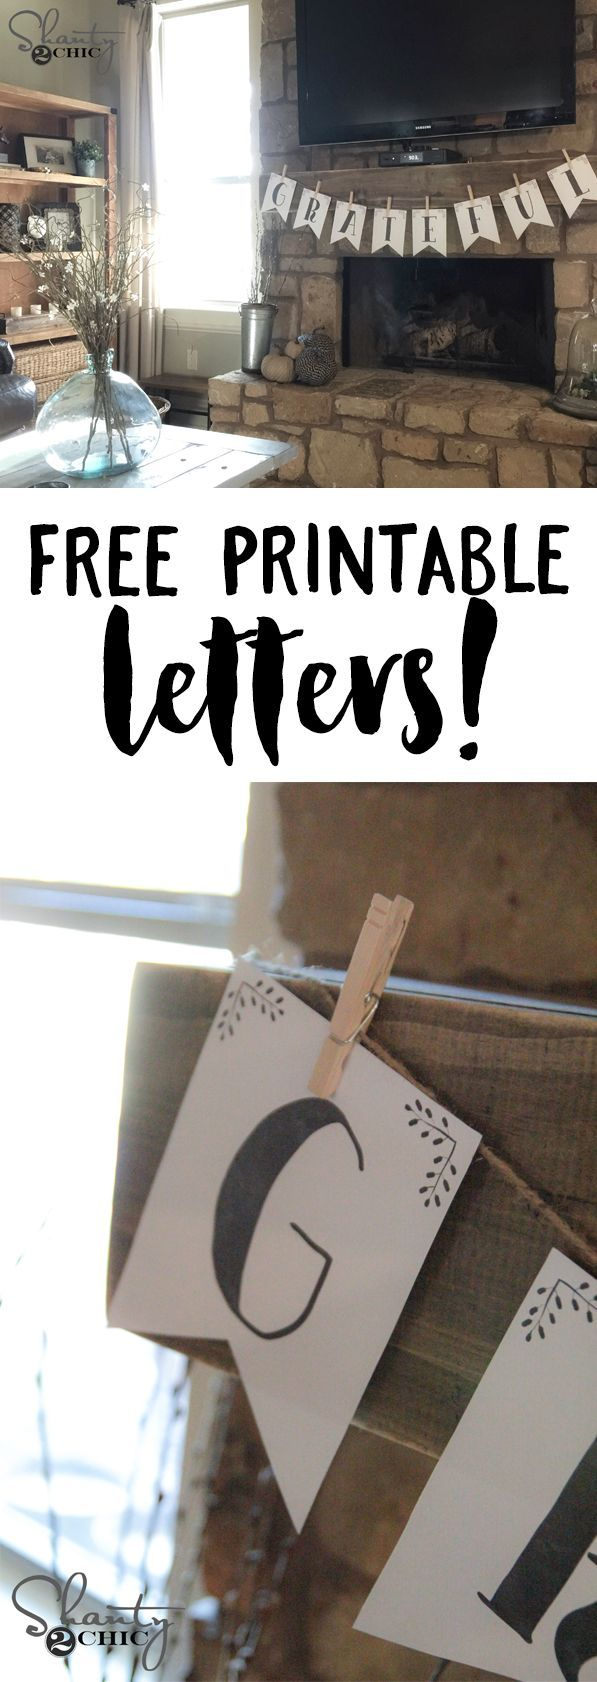 FREE printable letter banners You can print